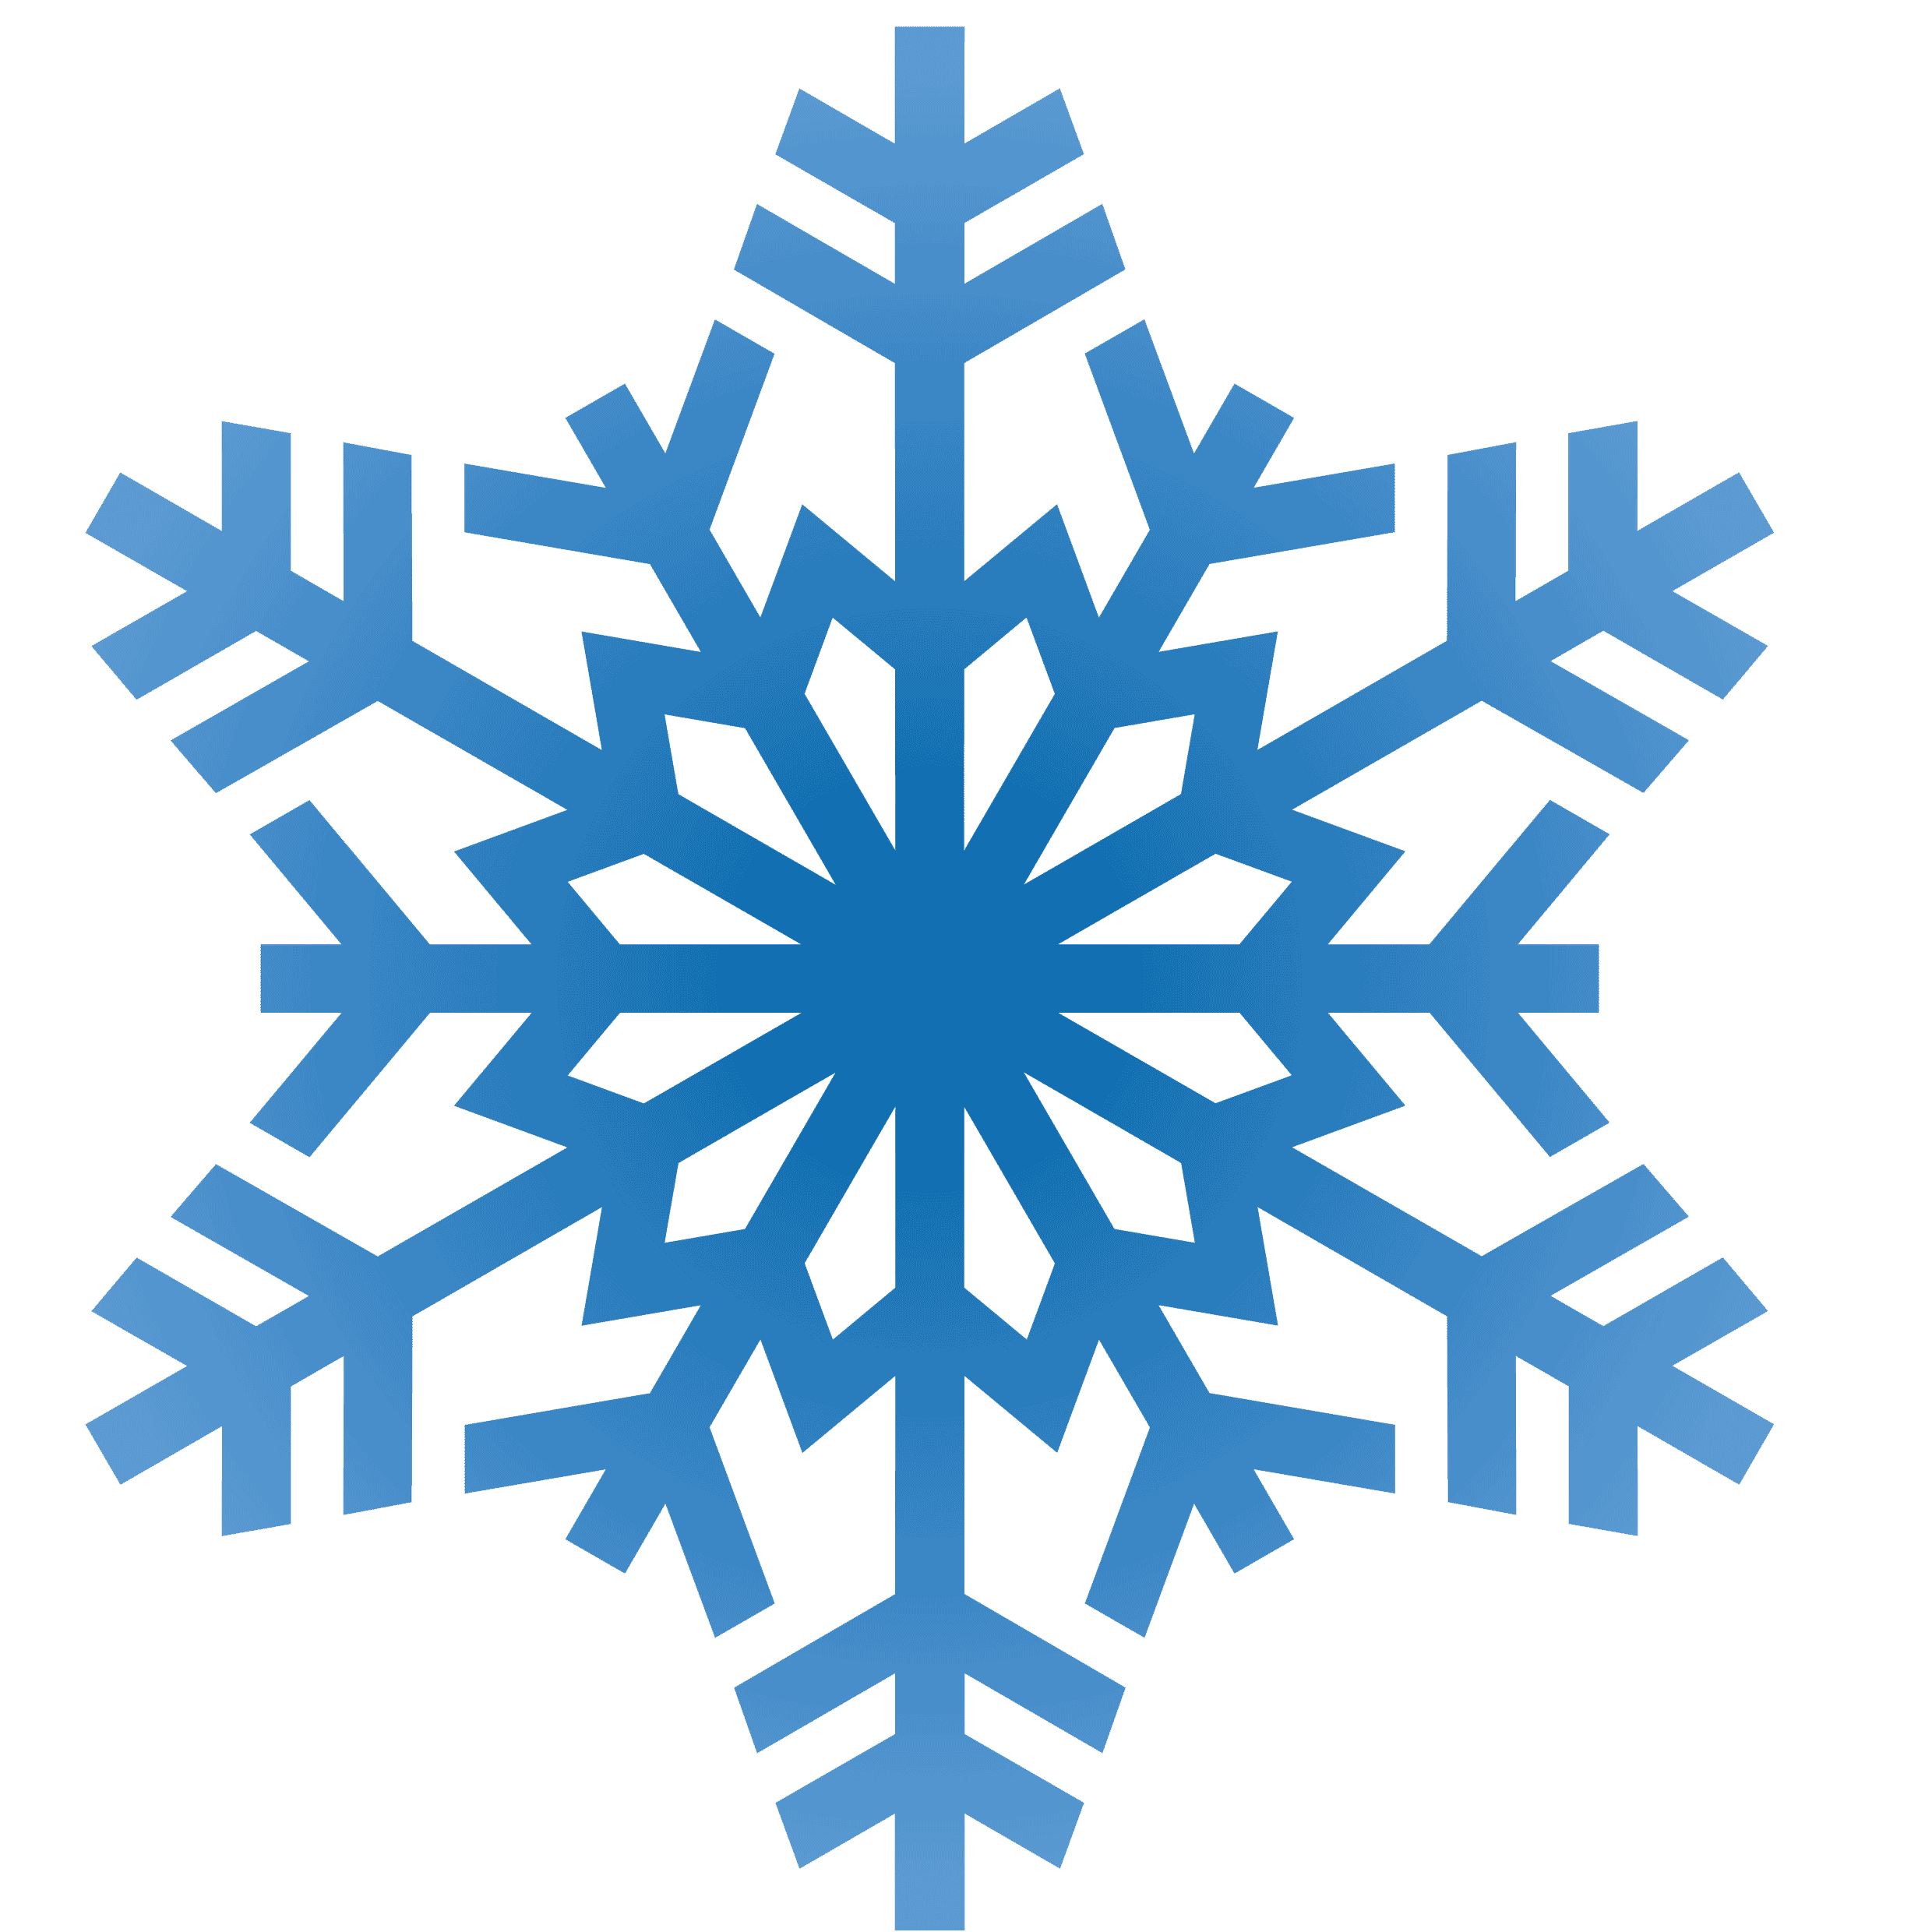 Snowflake png. Disney frozen clipart at